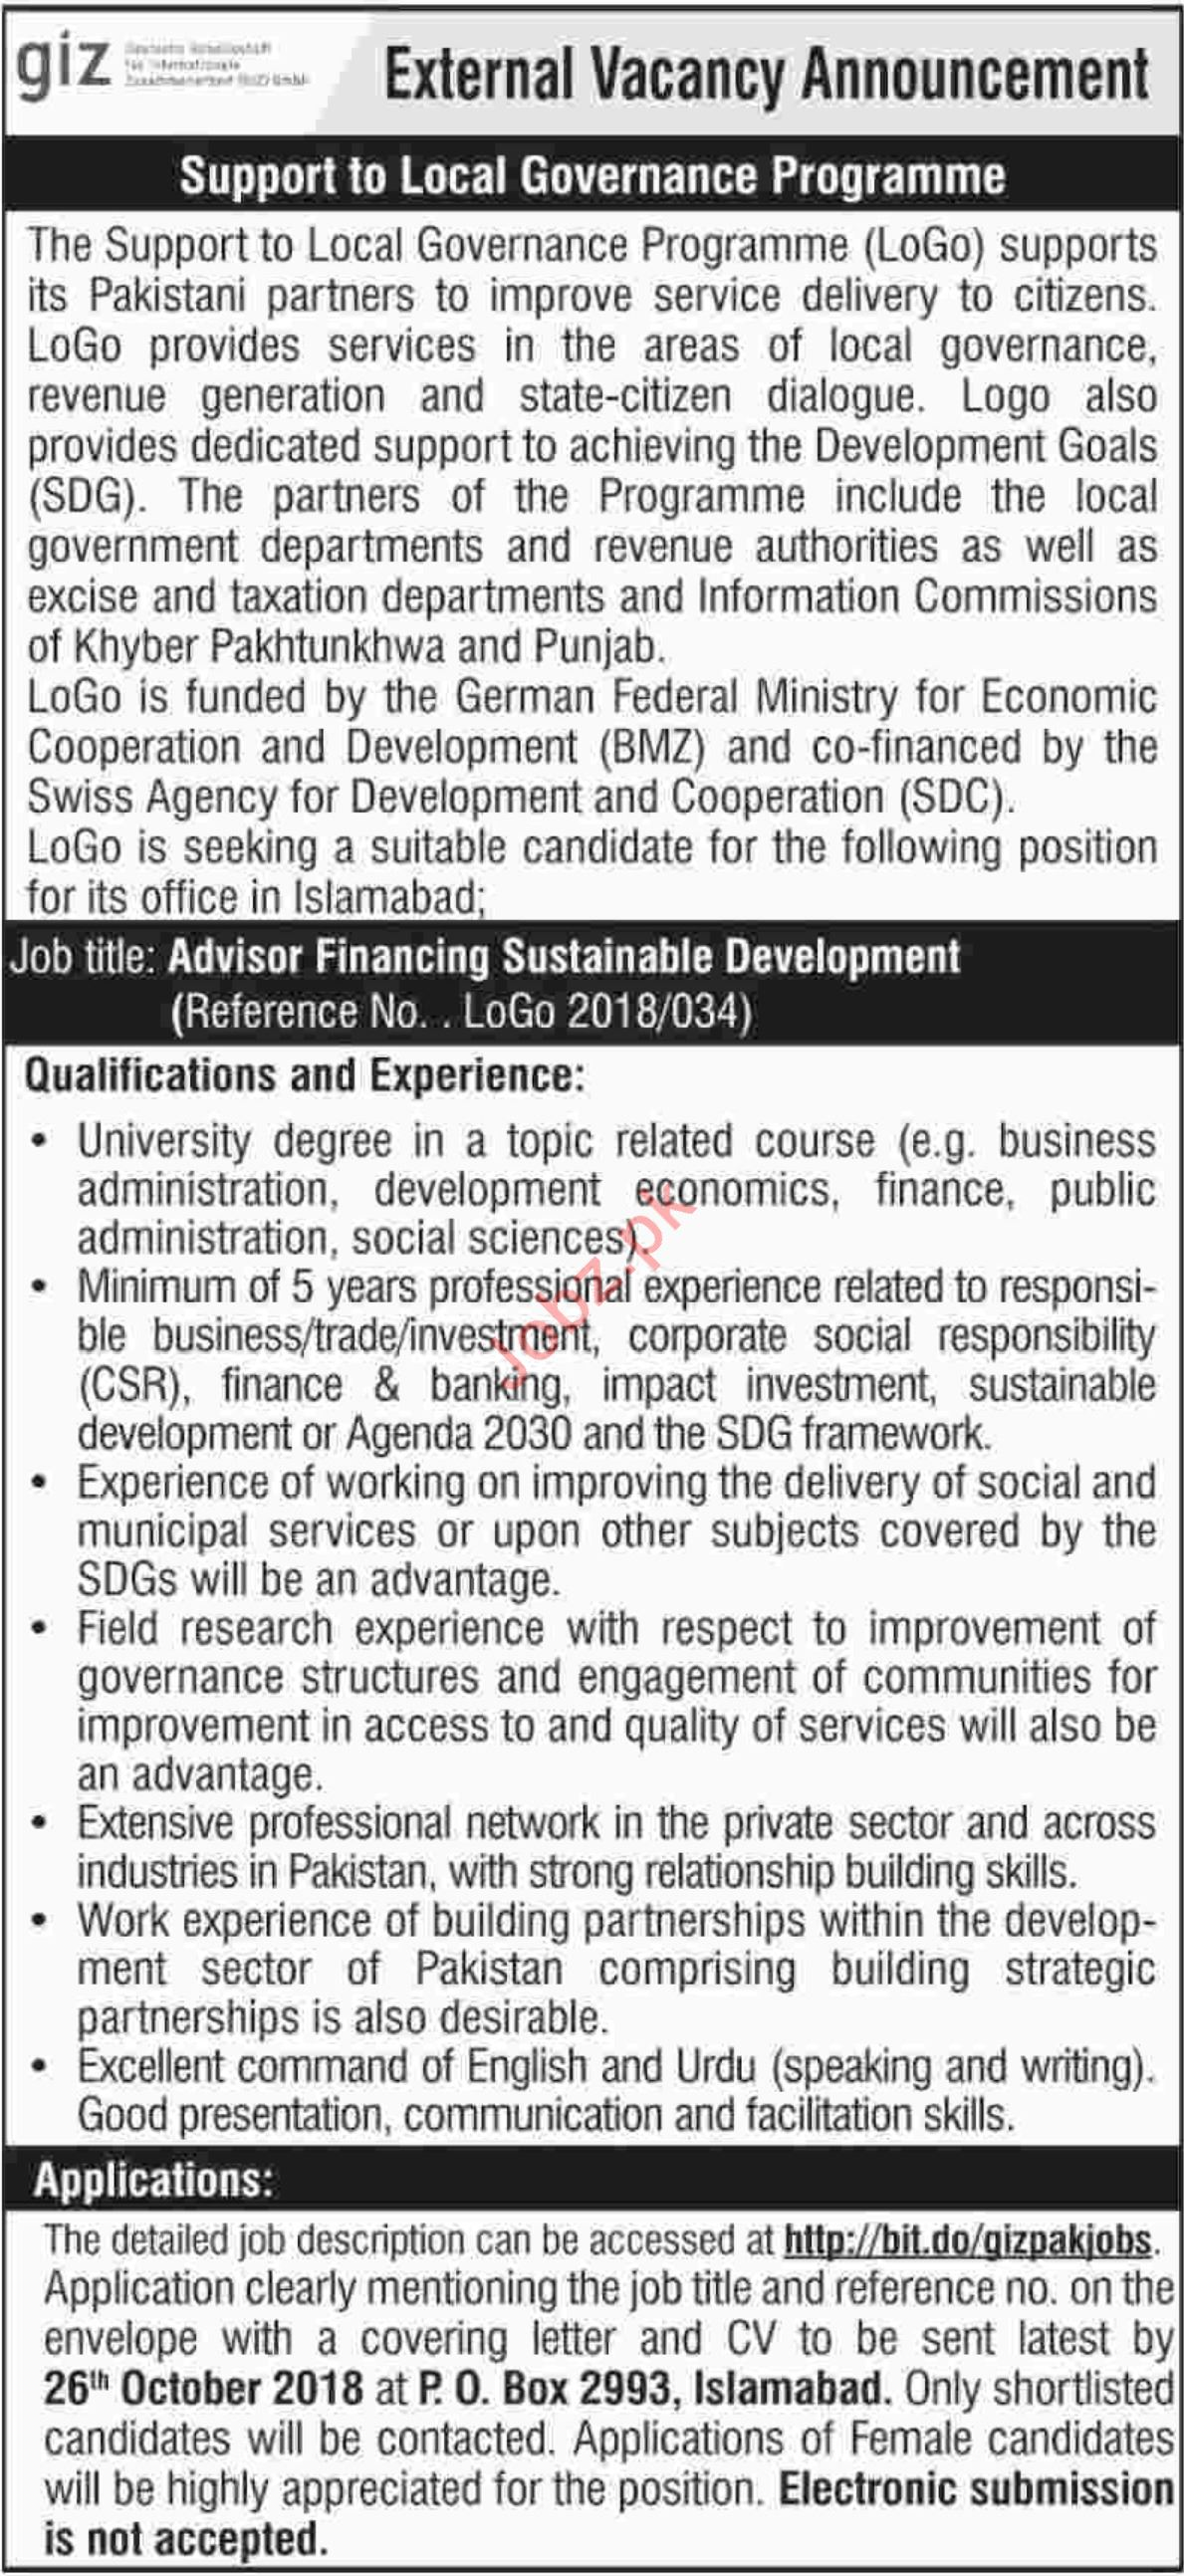 GIZ Pakistan Advisor Financing Sustainable Development Jobs